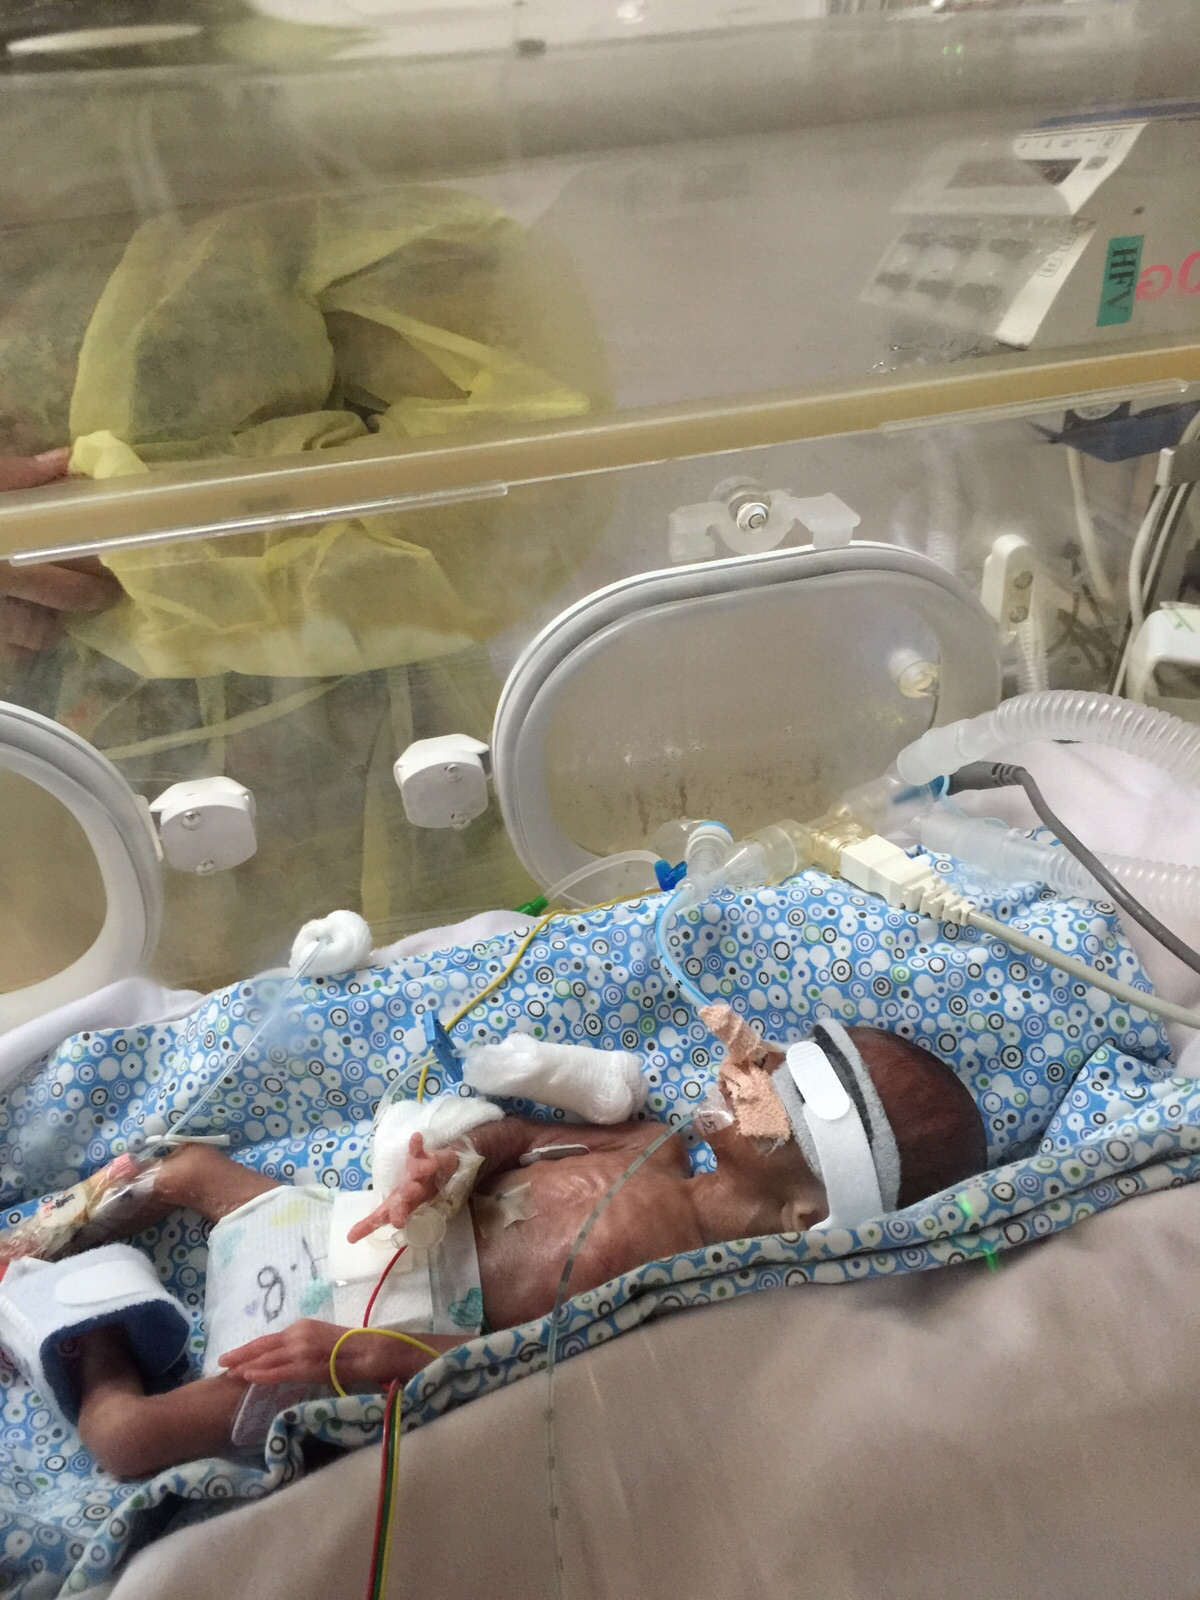 Baby Born At 20 Weeks Survival Rate: Kangaroo Care Helped Dubai's 450gm 'miracle' Baby Survive